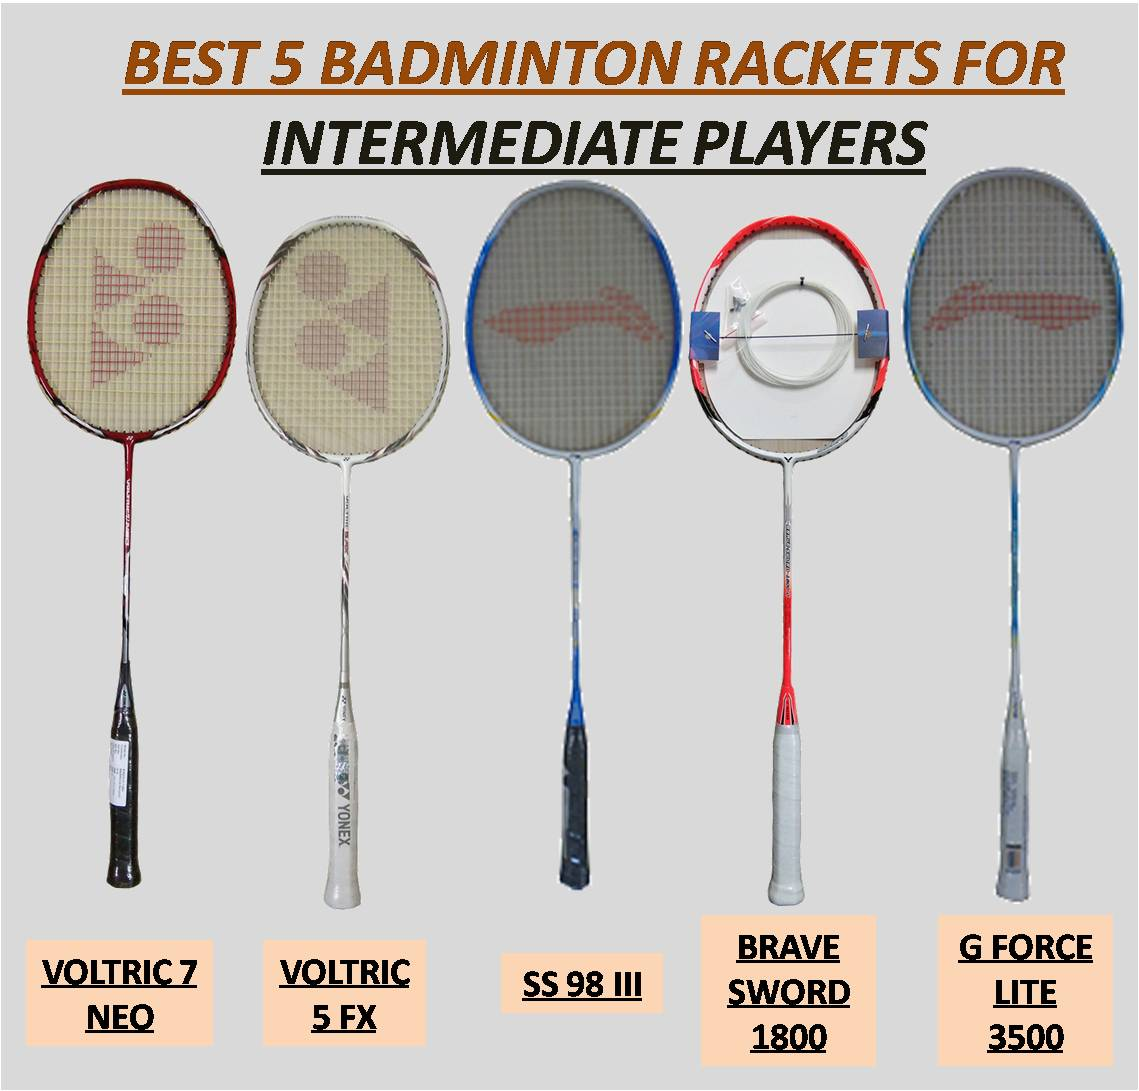 BEST 5 BADMINTON RACKETS FOR INTERMEDIATE PLAYERS_1